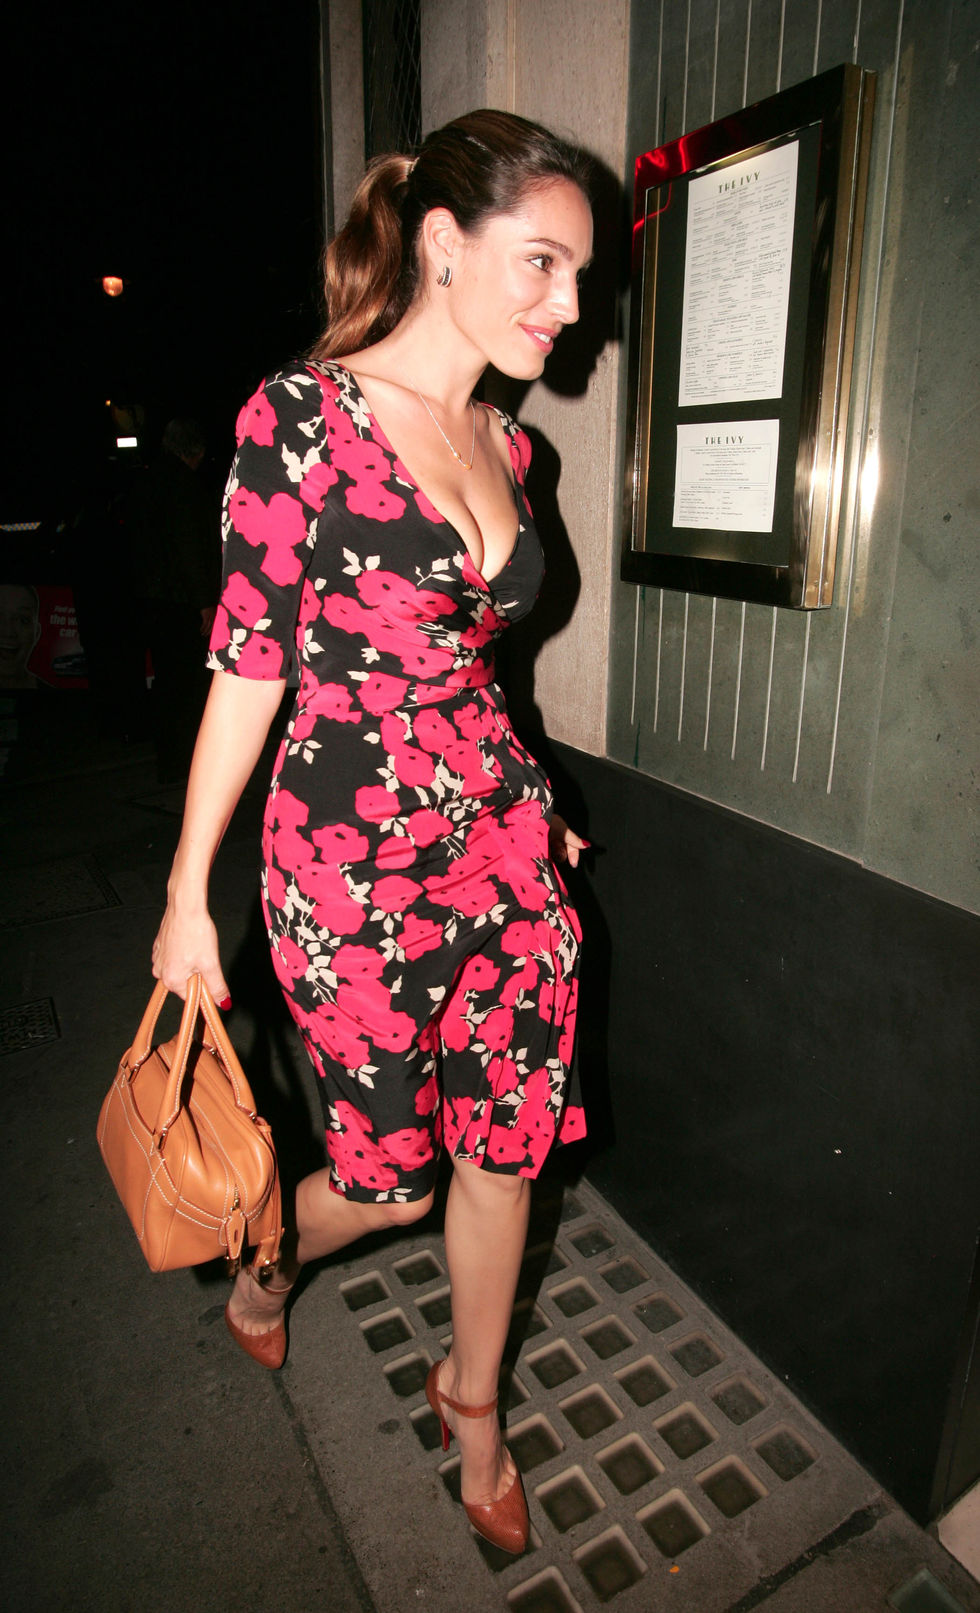 kelly-brook-cleavage-candids-at-ivy-restaurant-in-london-01